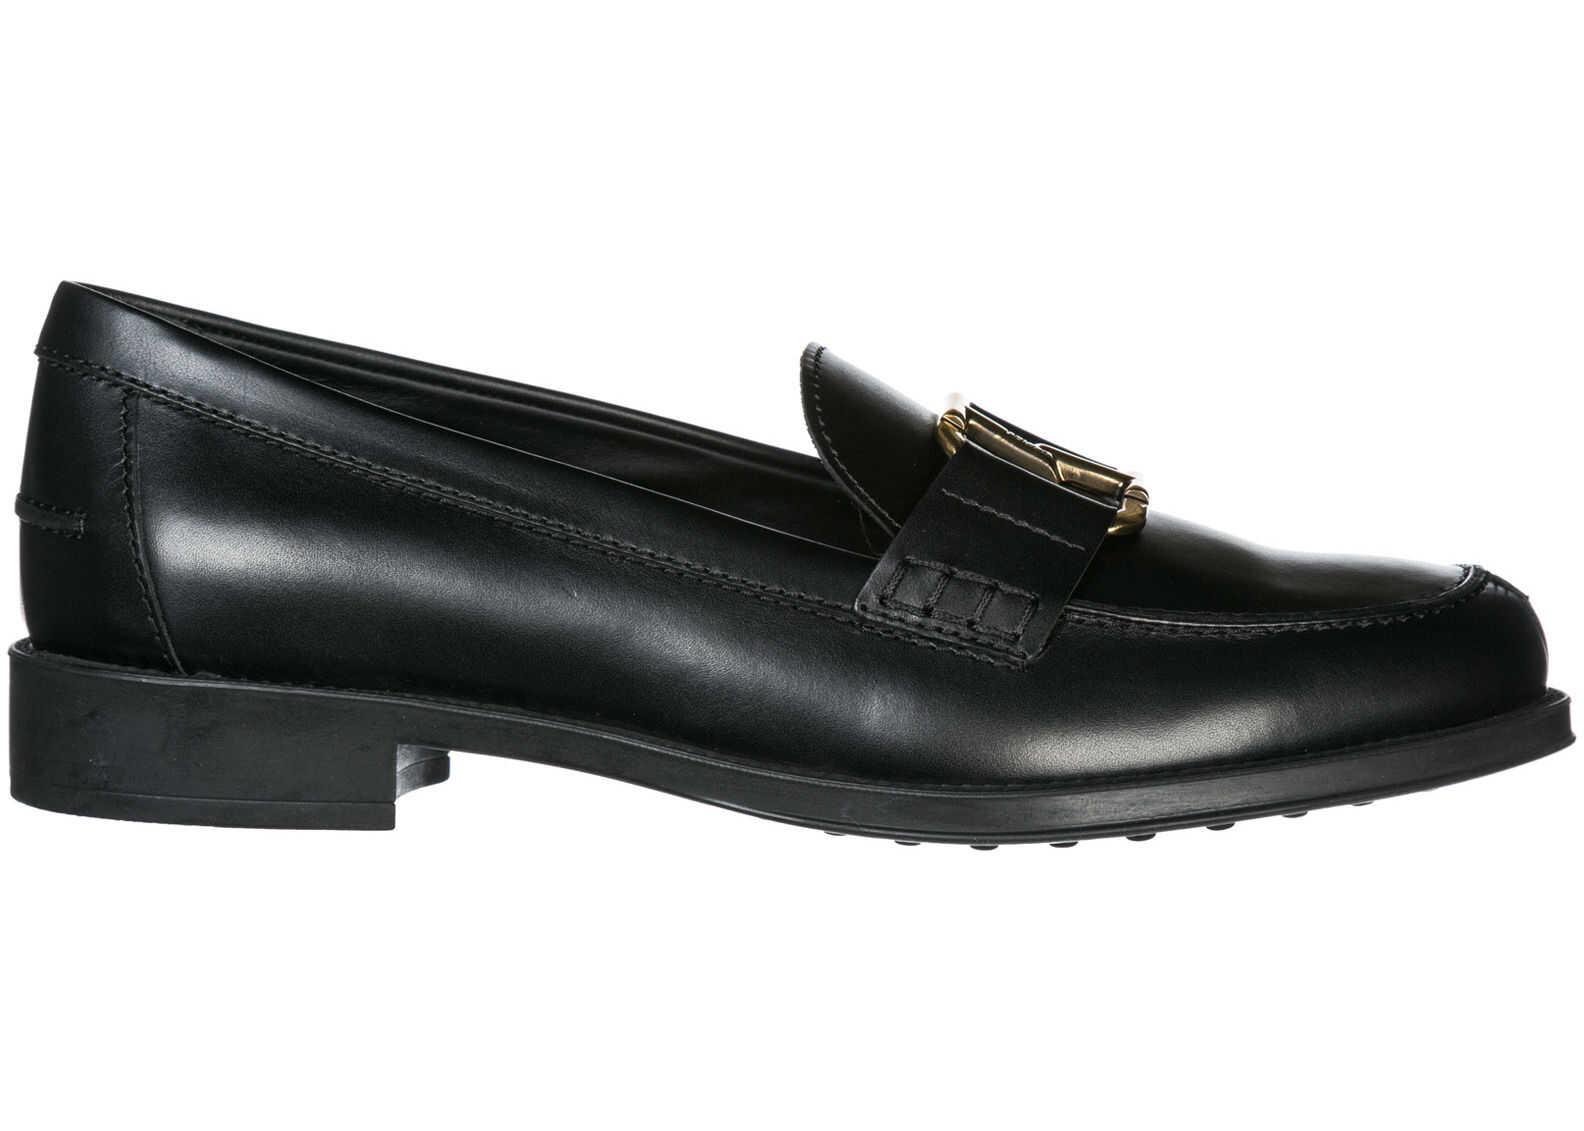 TOD'S Loafers Moccasins Black